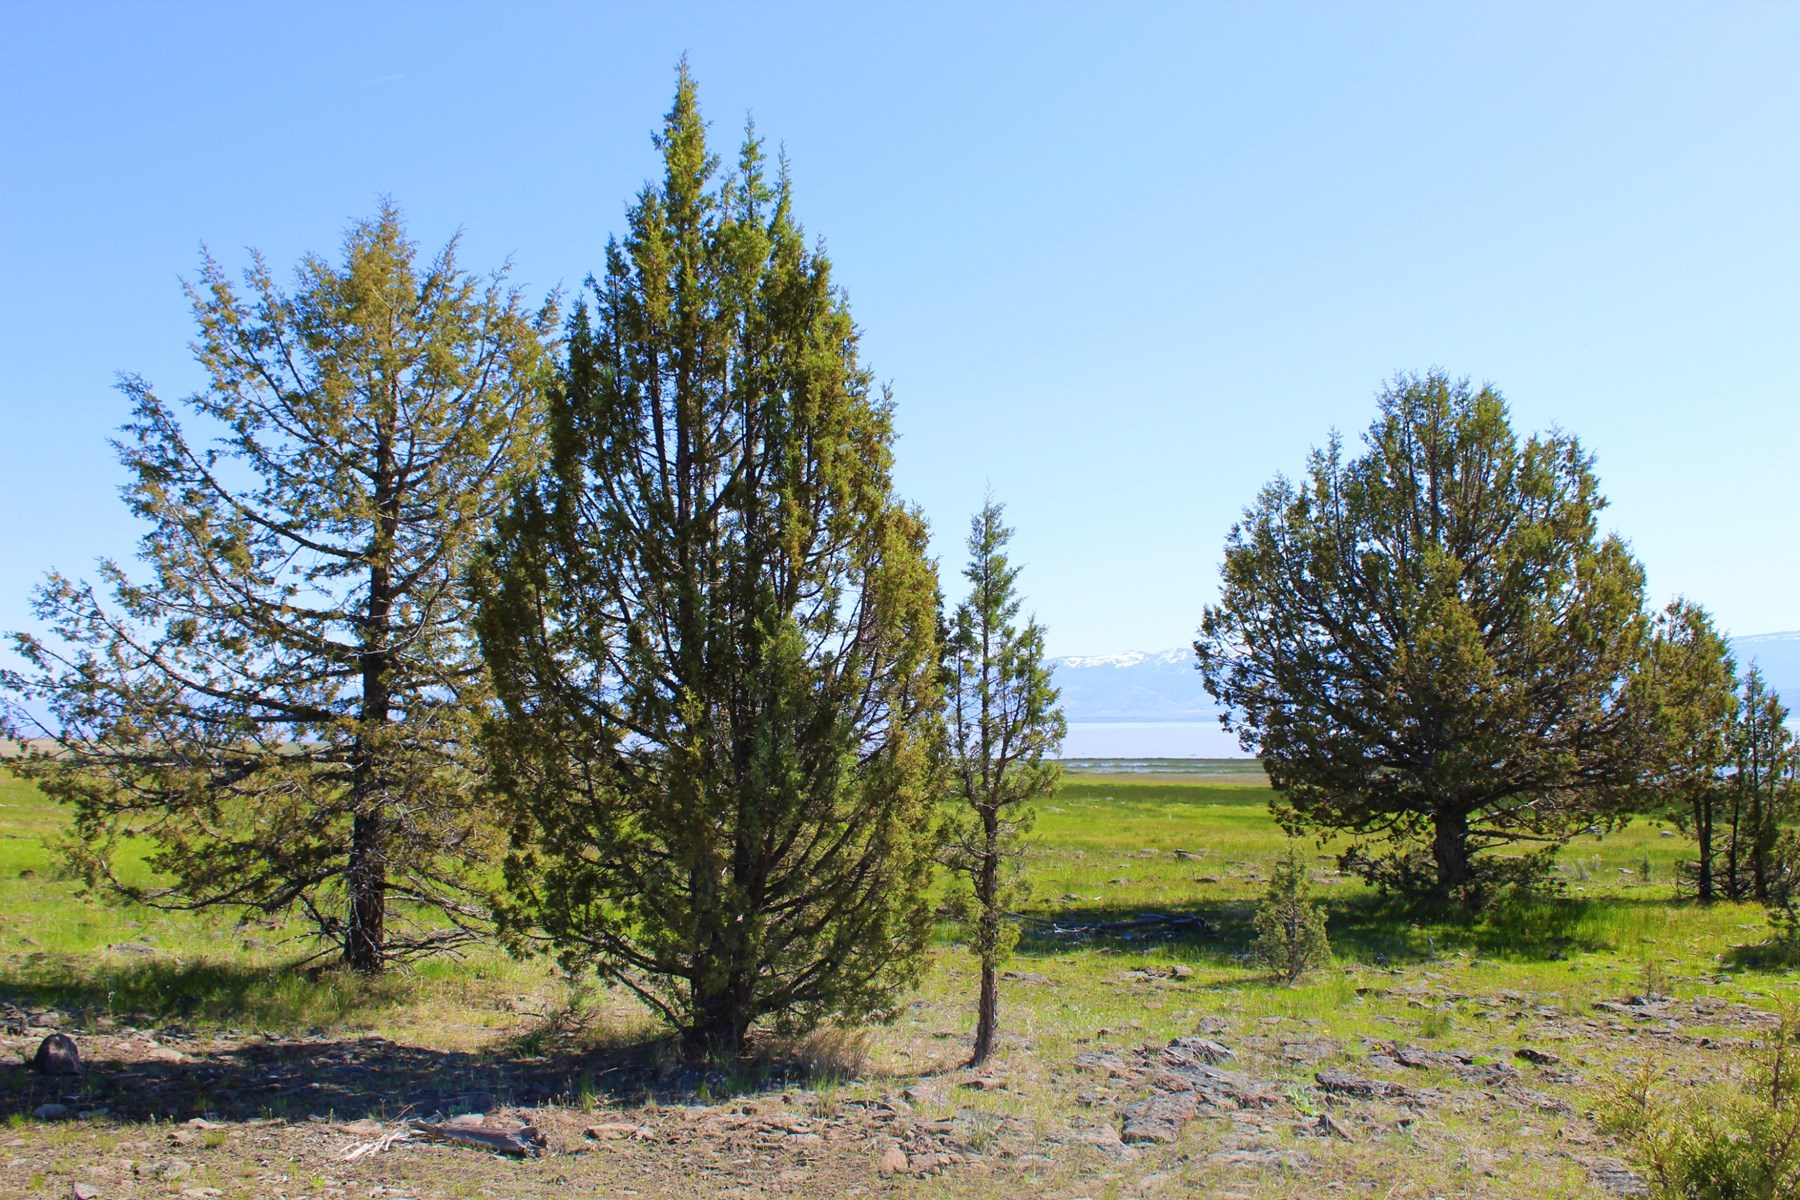 133 Acres For Sale on the West Side of Goose Lake